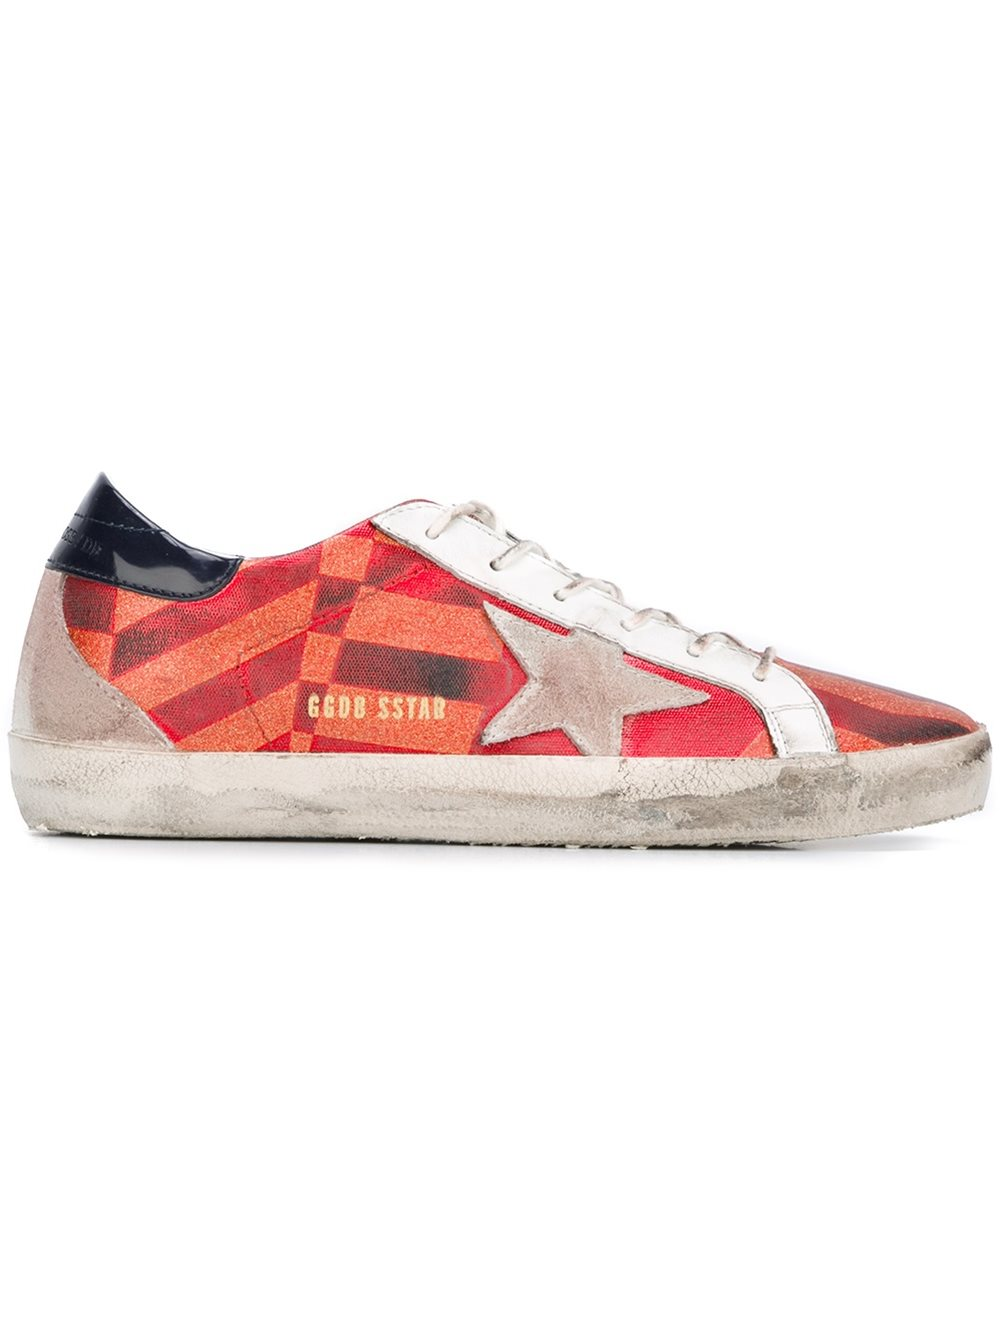 Golden Goose Men Super Star Sneakers In Flat Rubber With Suede Star